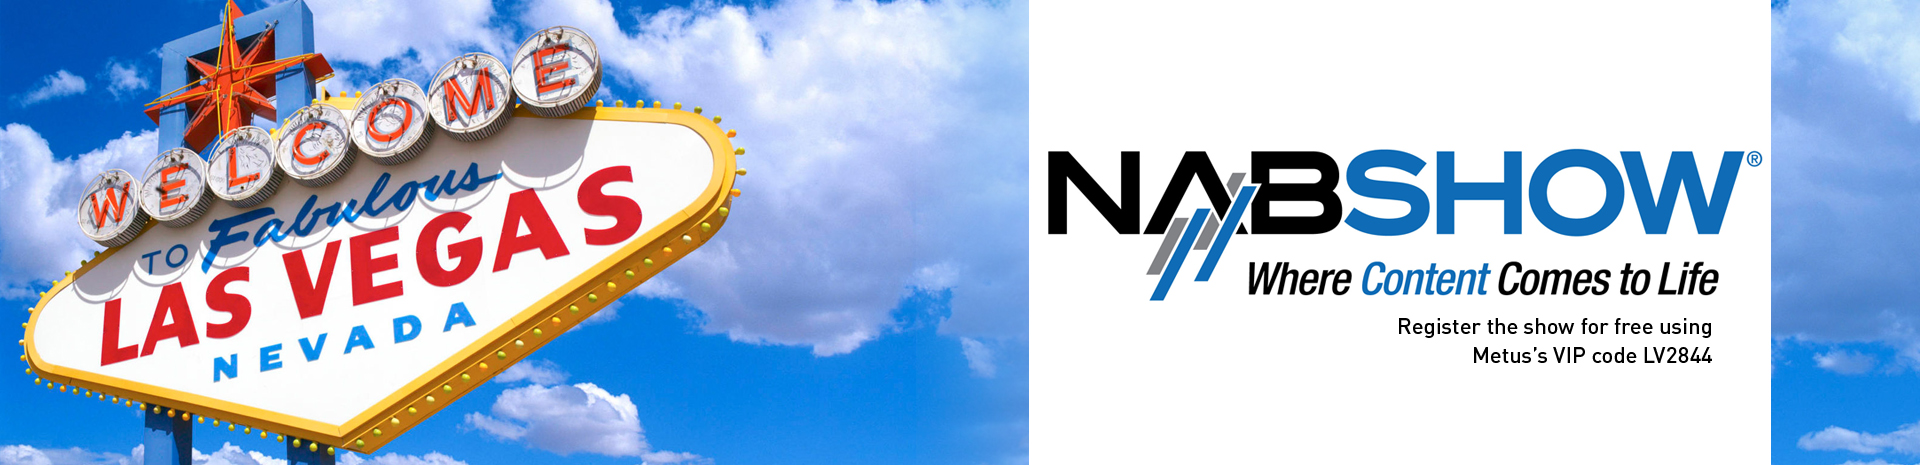 Join us at NAB Show, 13-16 April 2015 Las Vegas!